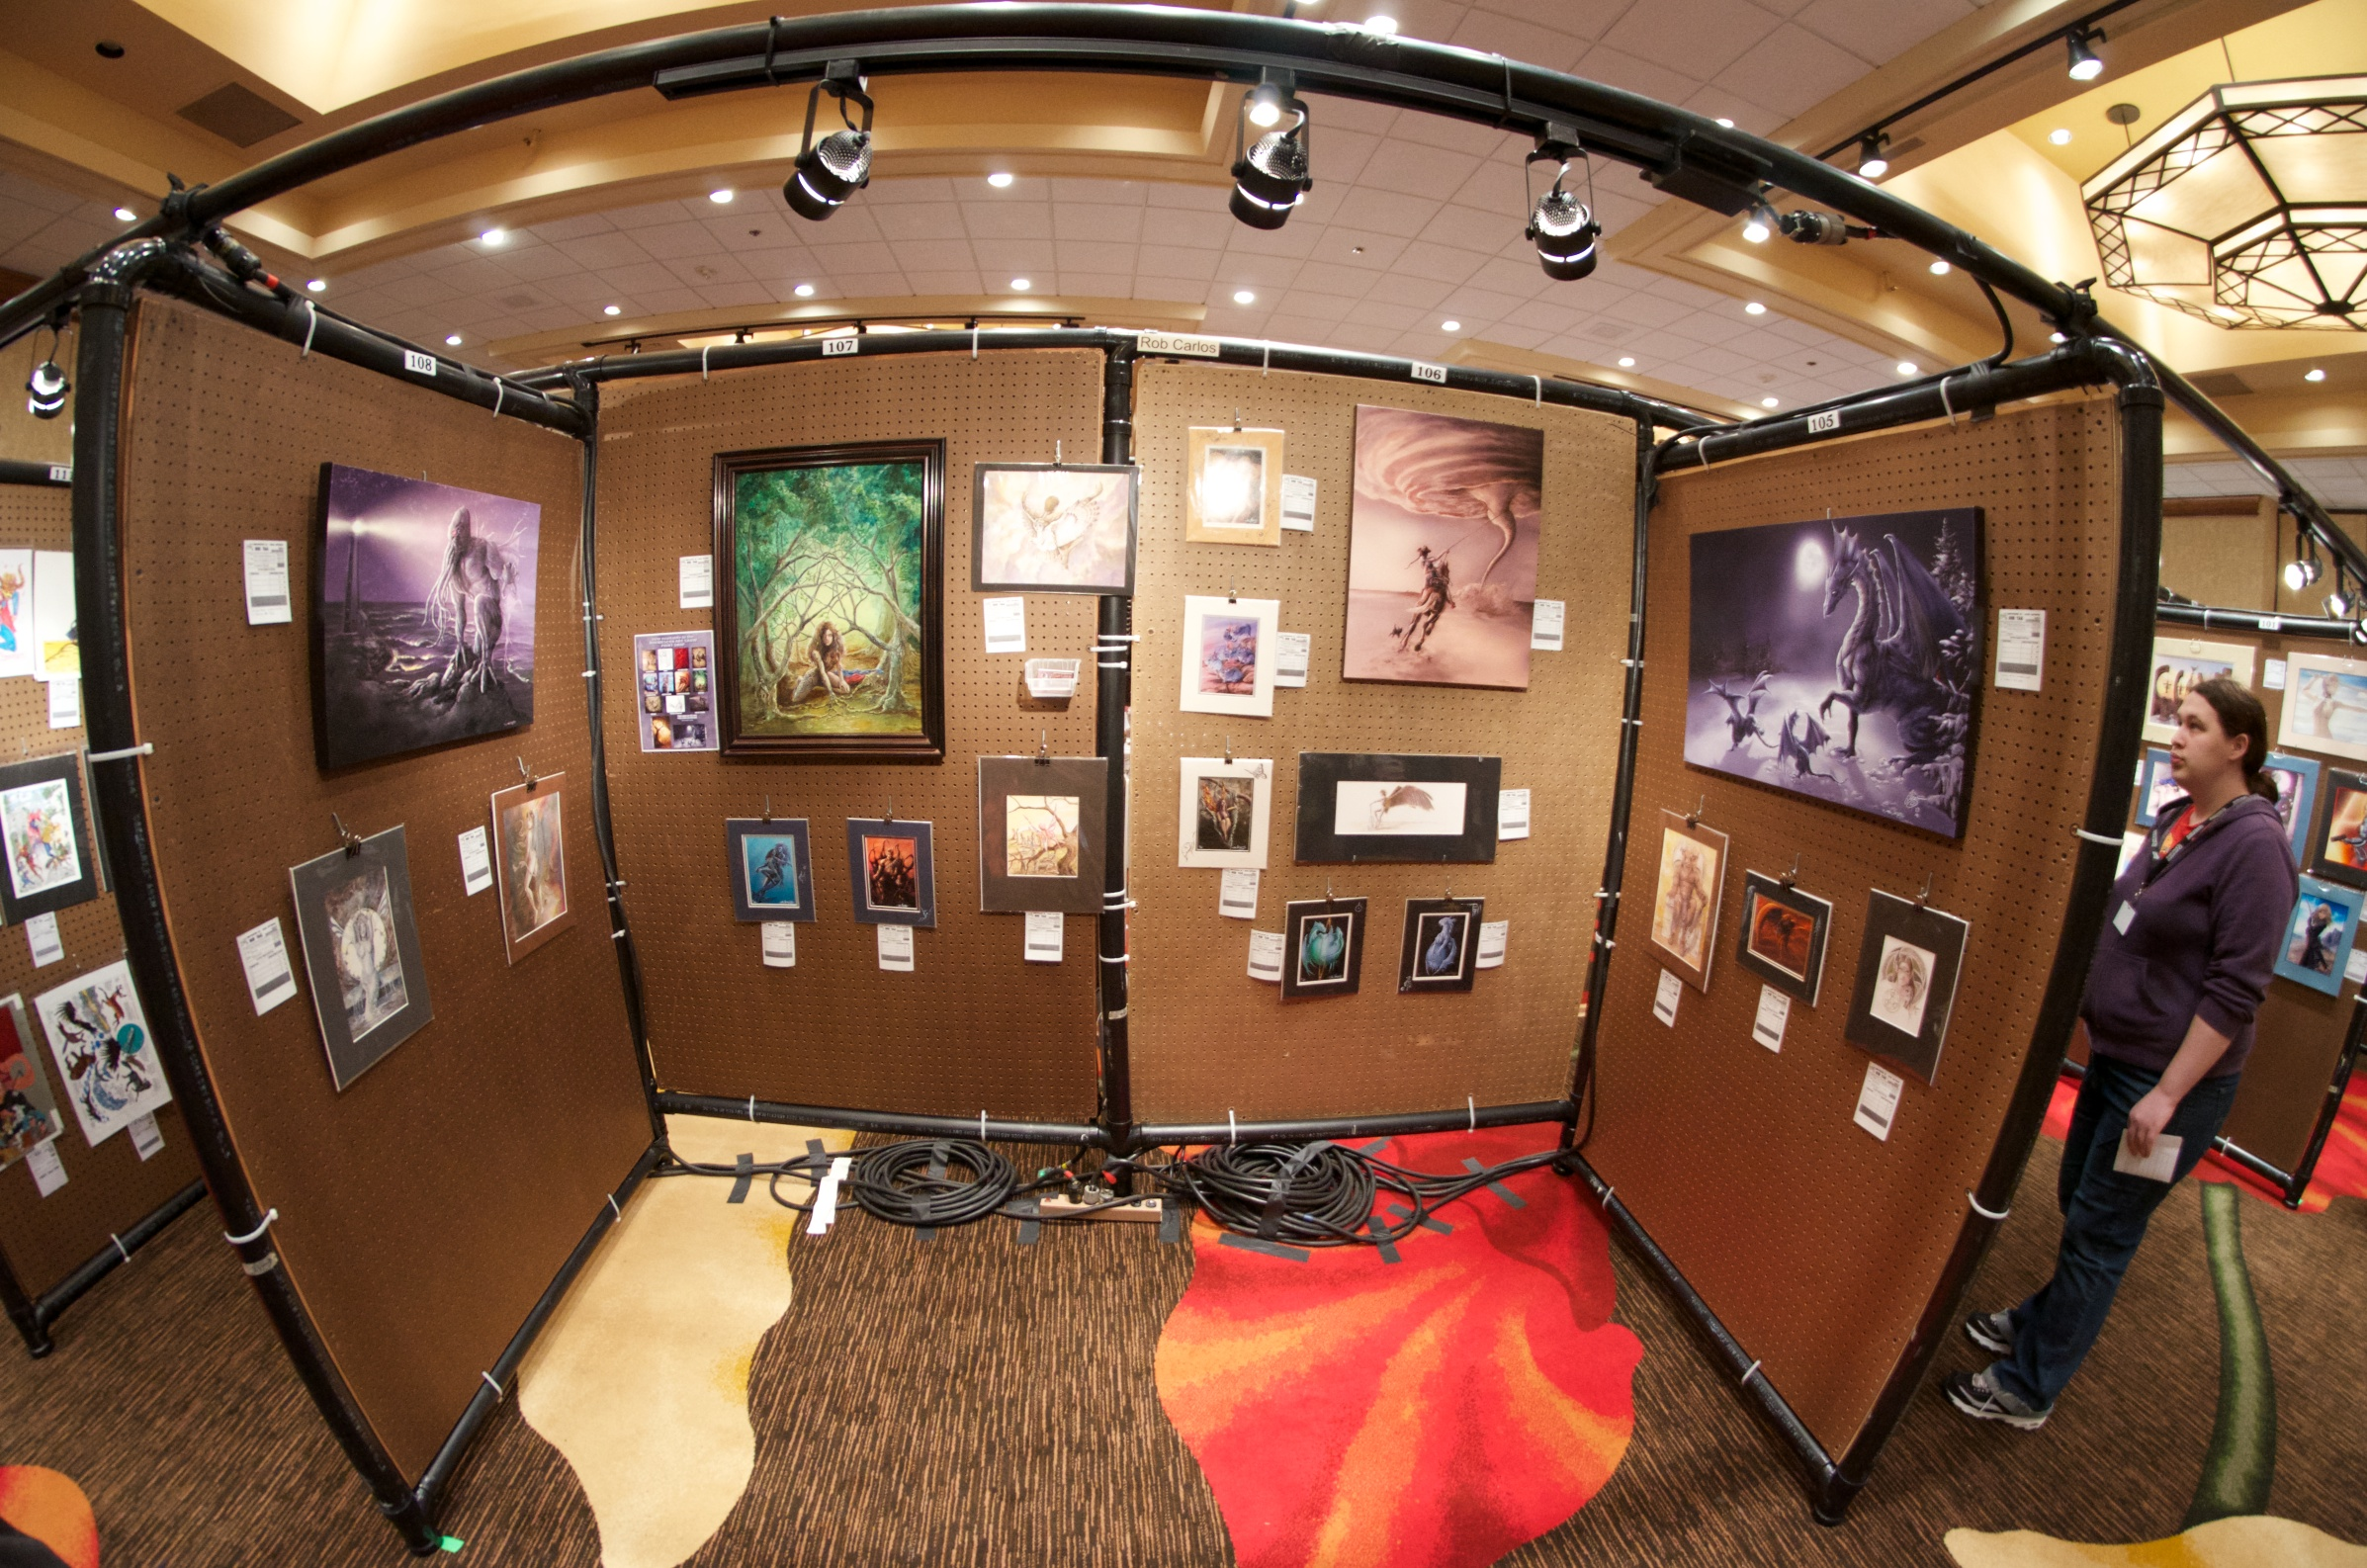 Art Show Panels In Use